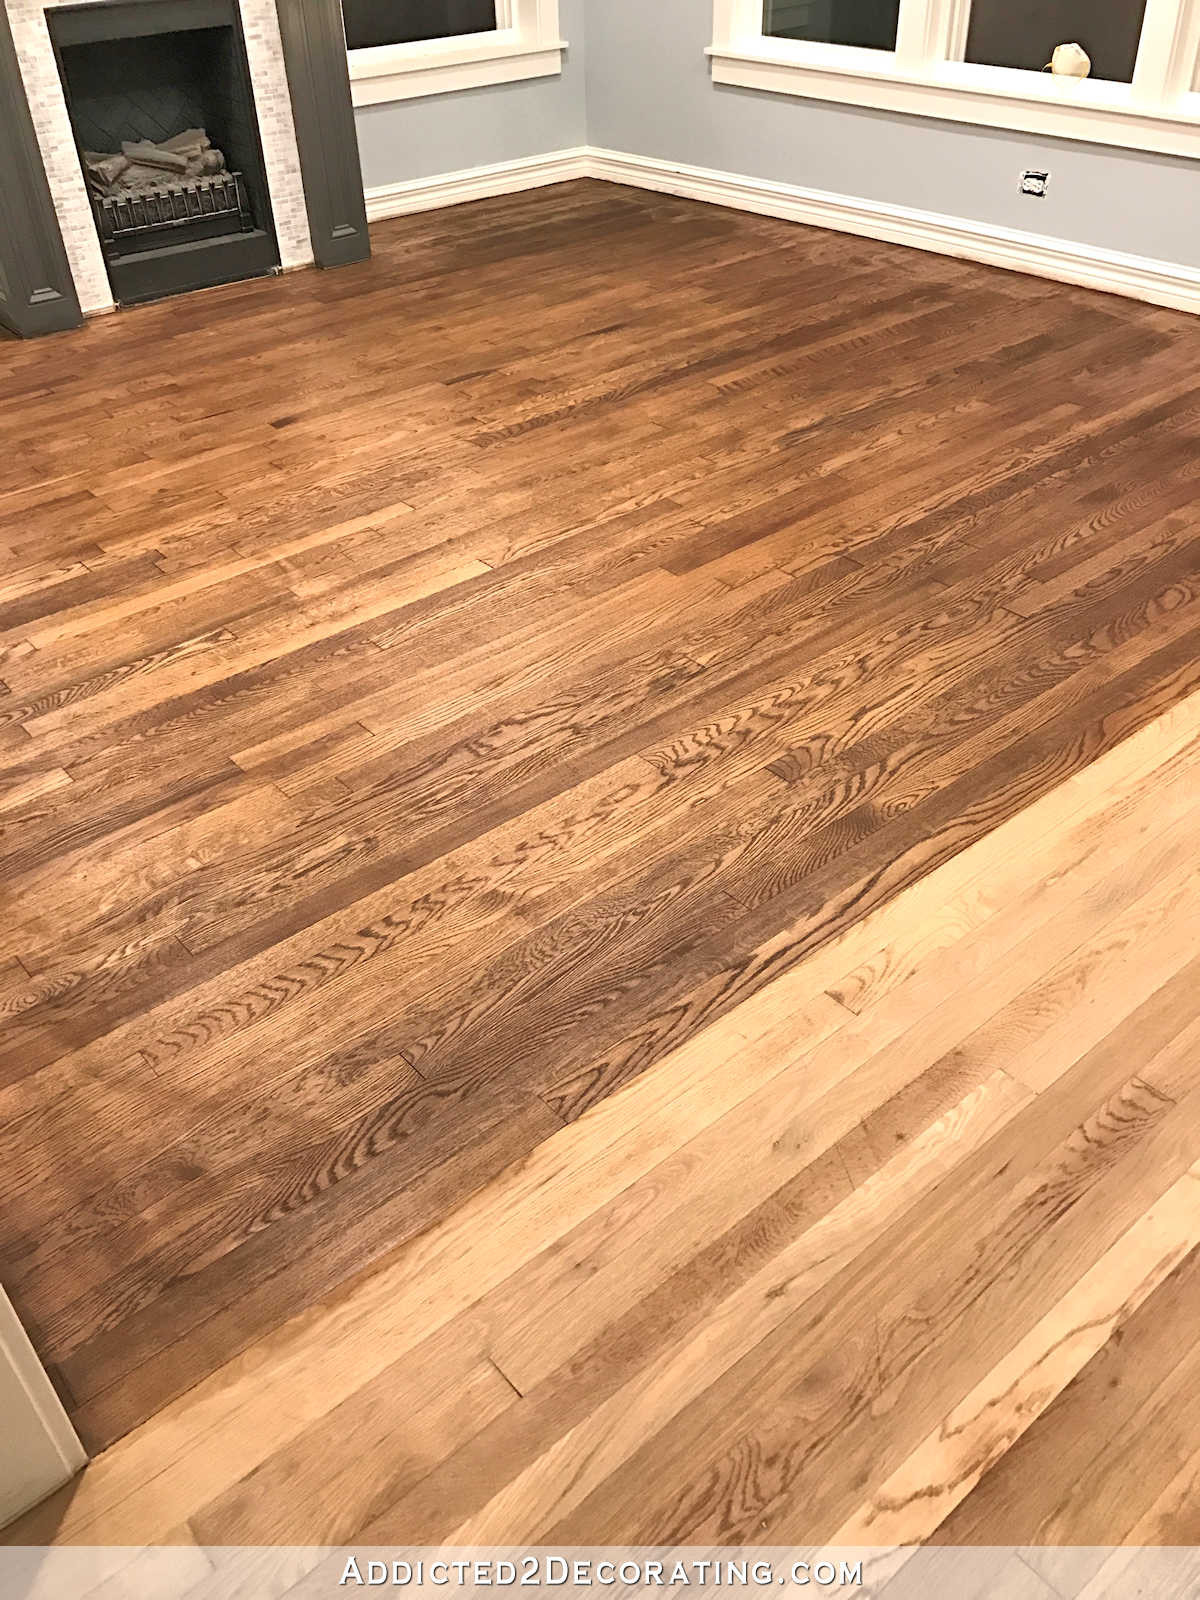 can you paint hardwood floors without sanding of adventures in staining my red oak hardwood floors products process for staining red oak hardwood floors 7 stain on the living room floor